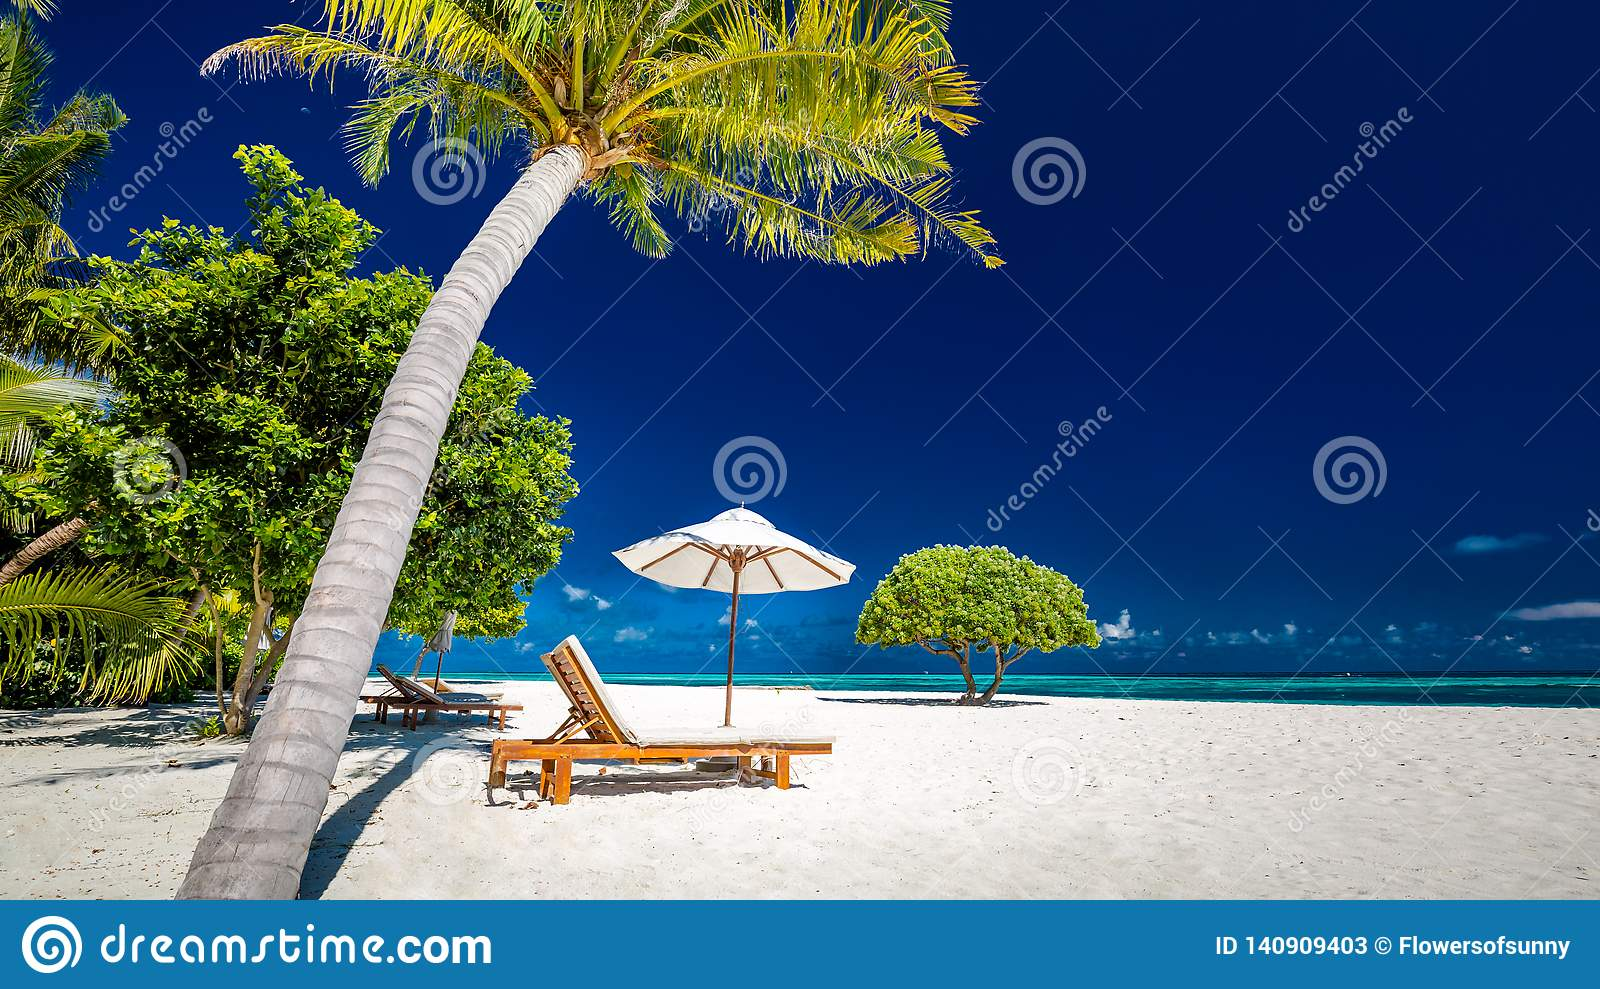 Amazing beach panorama. Tropical holiday landscape banner